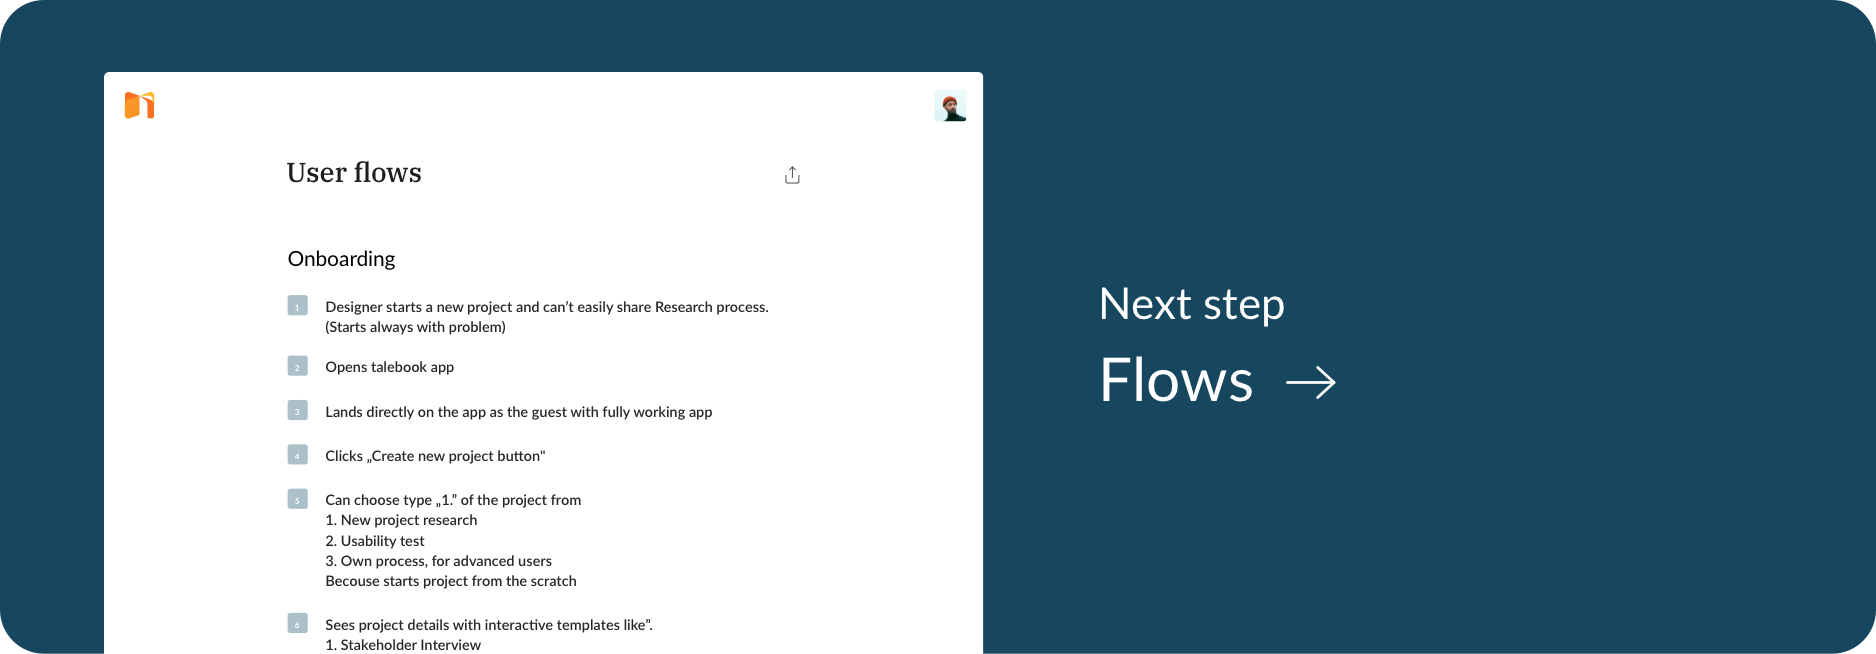 Go to the next Article - Flows